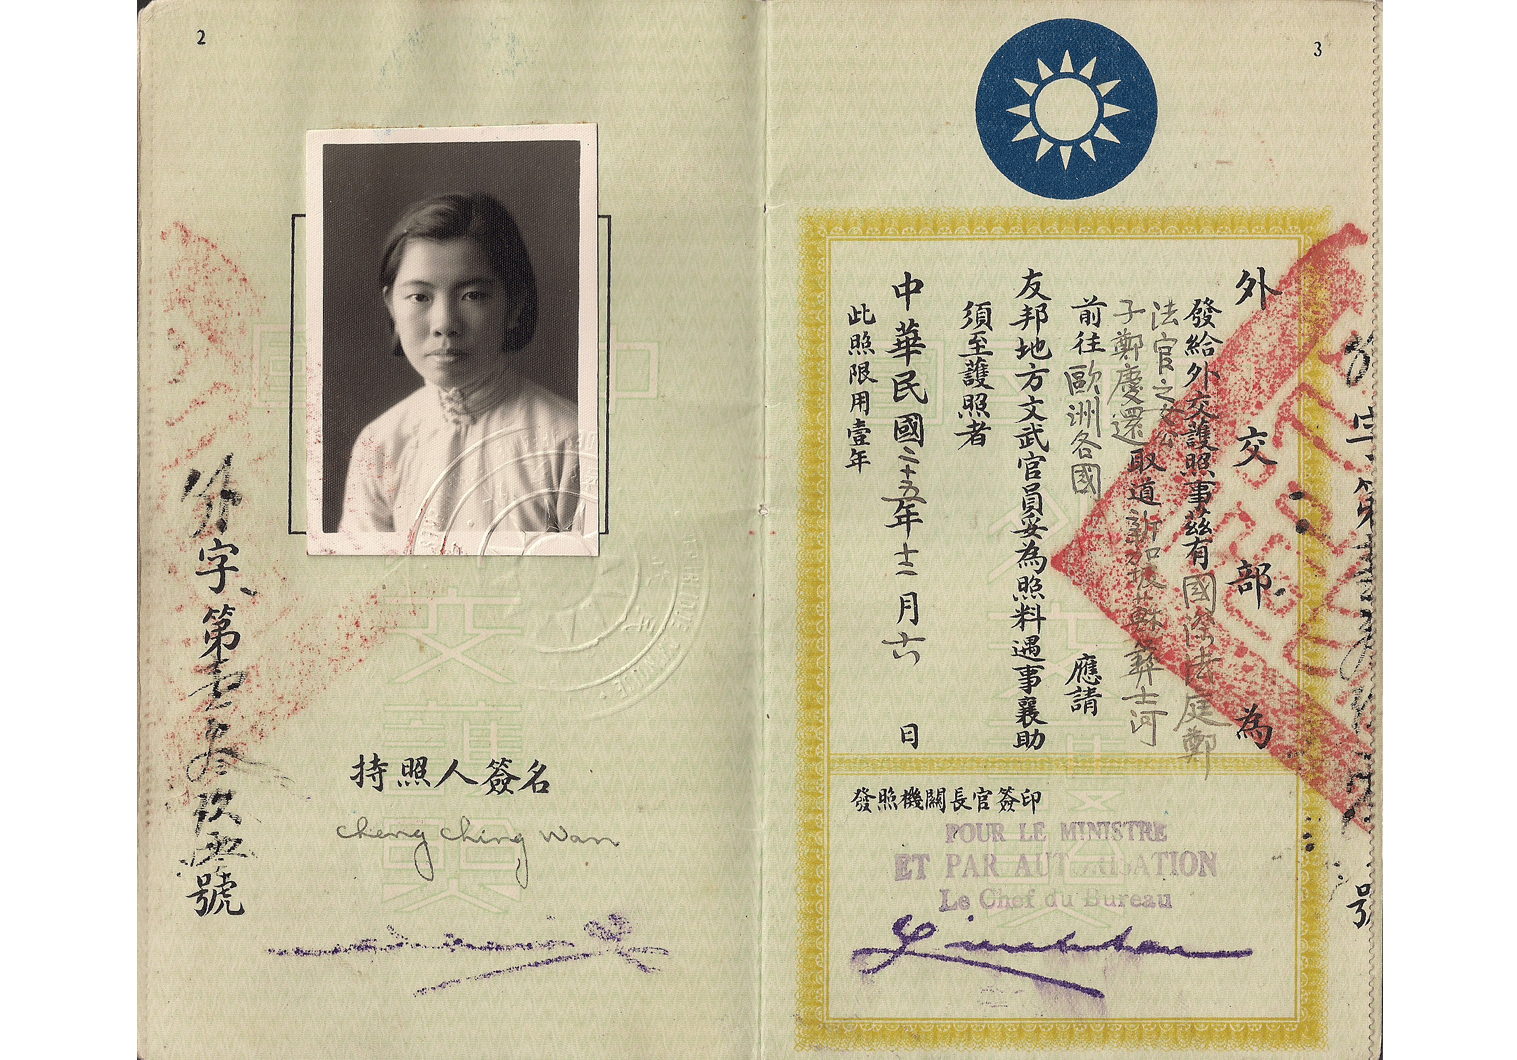 Chinese Diplomatic passport